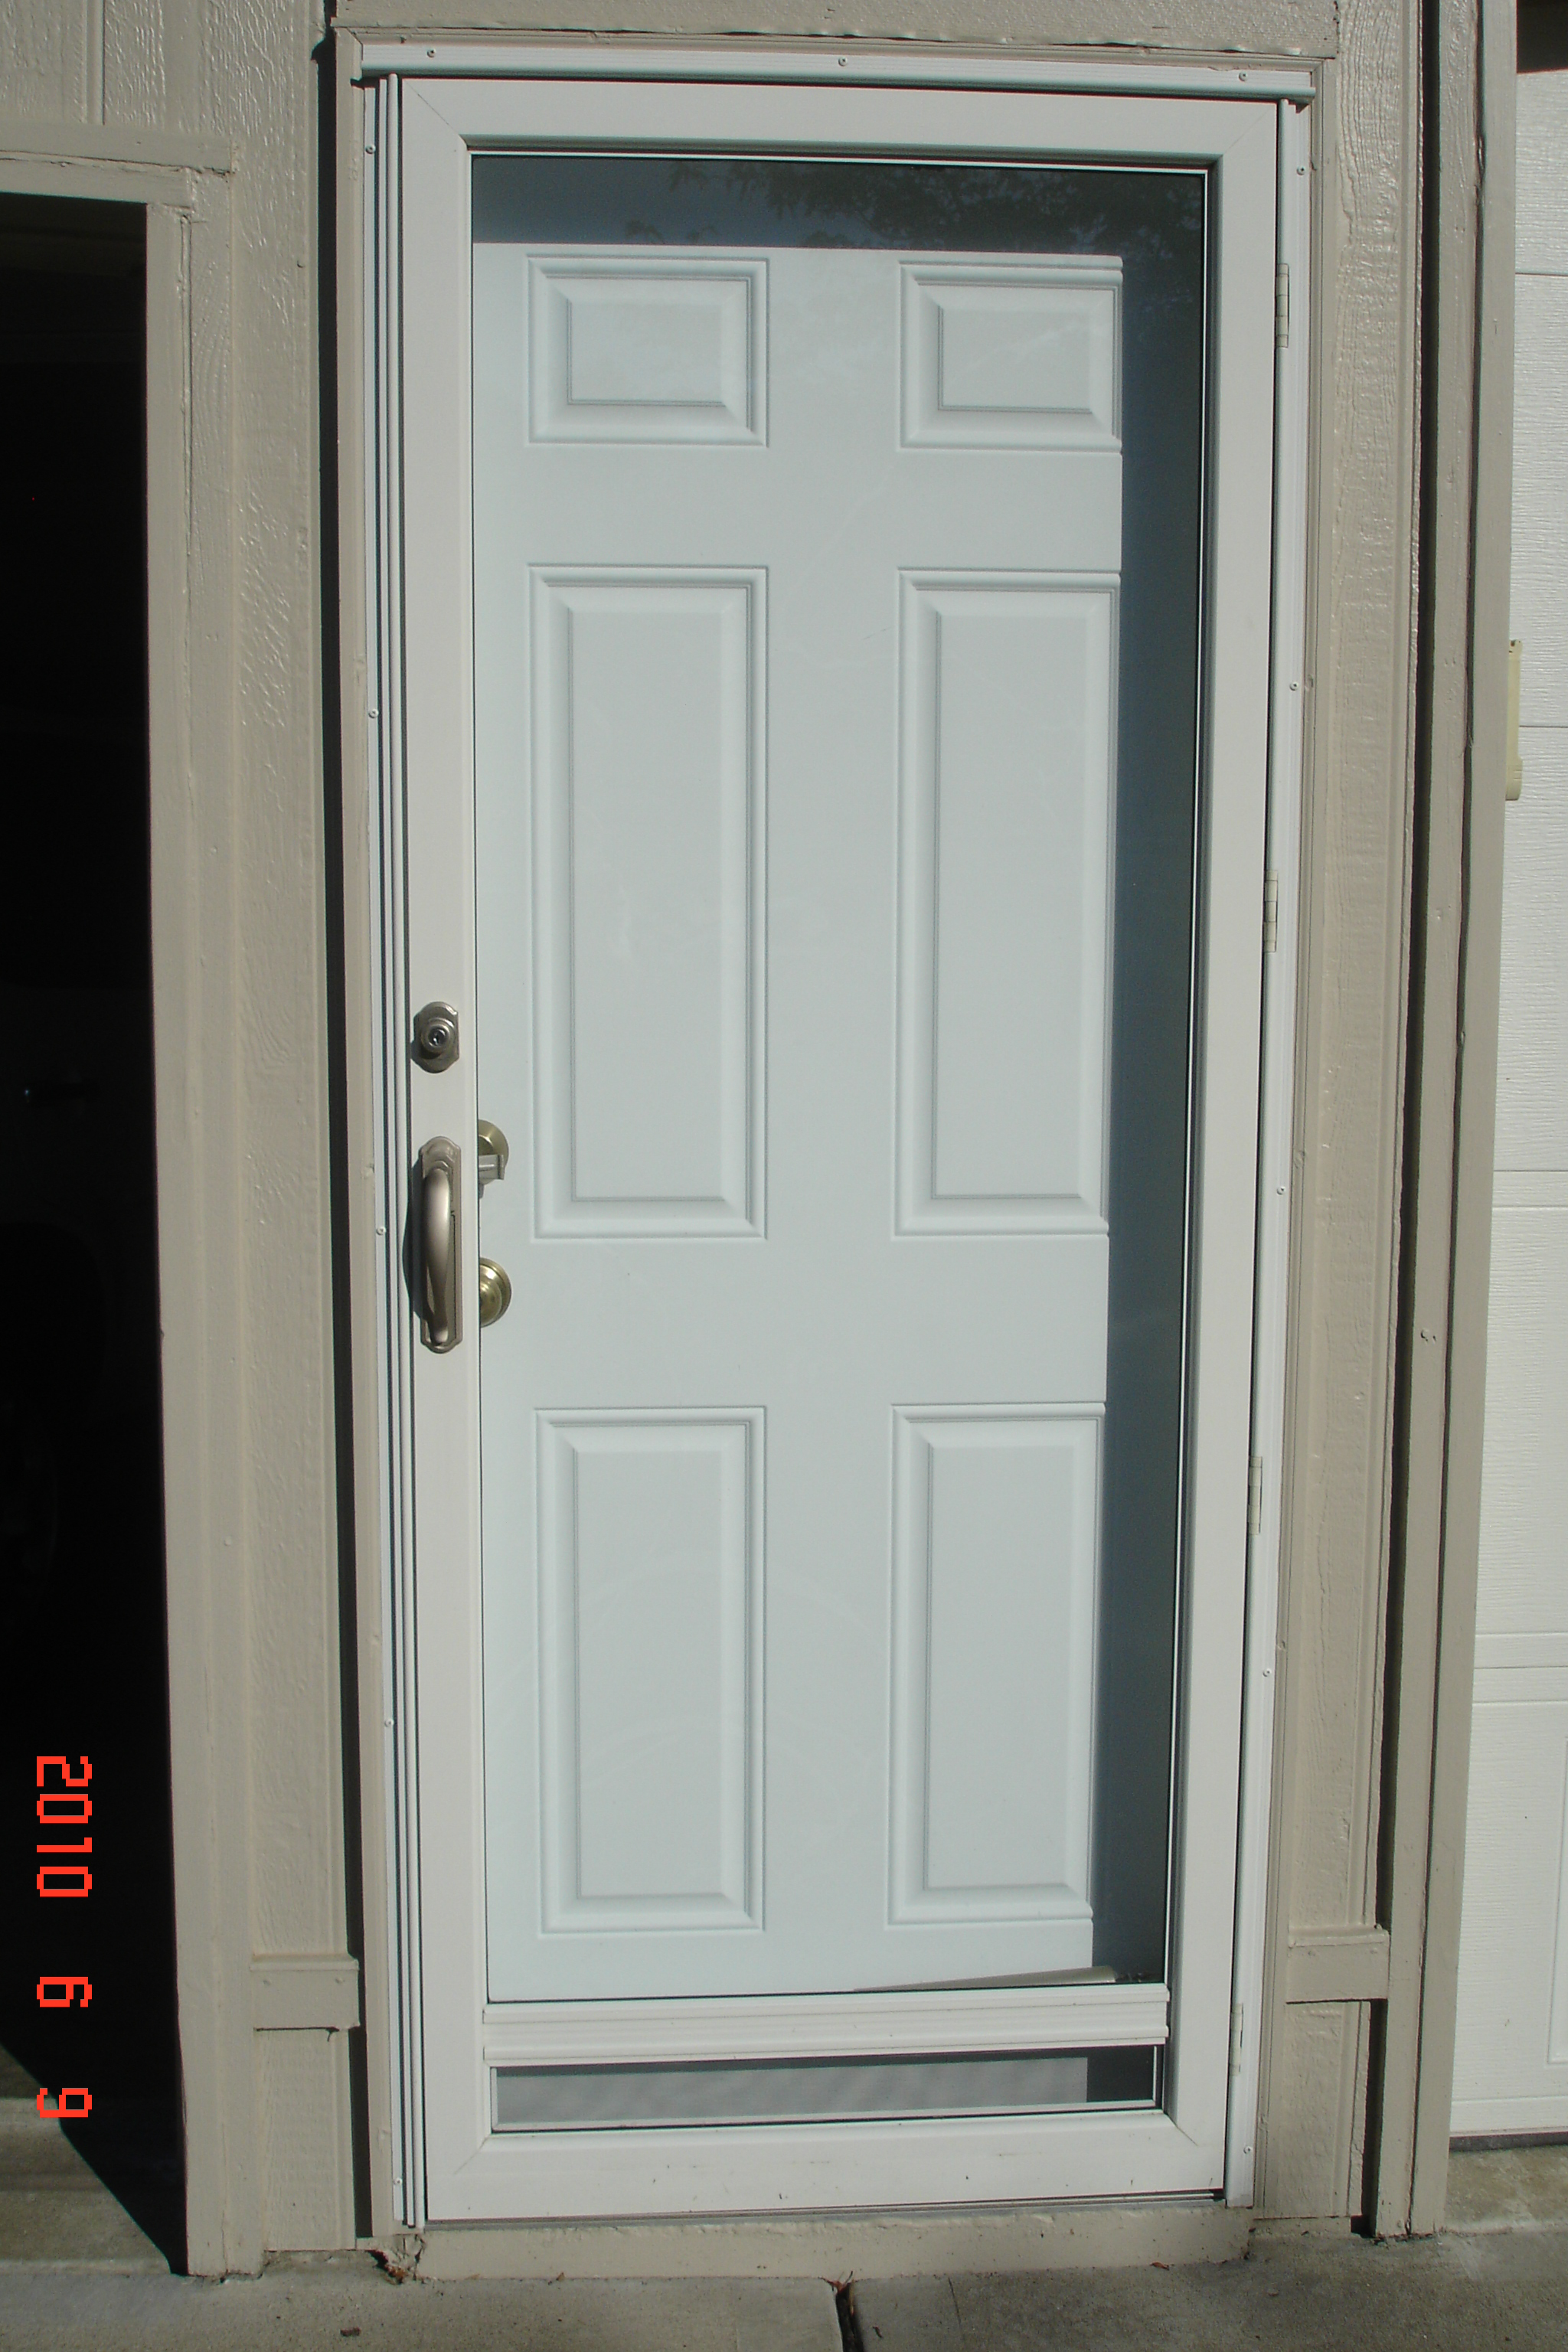 King One Lite Aluminum Storm Doors Columbia Windows